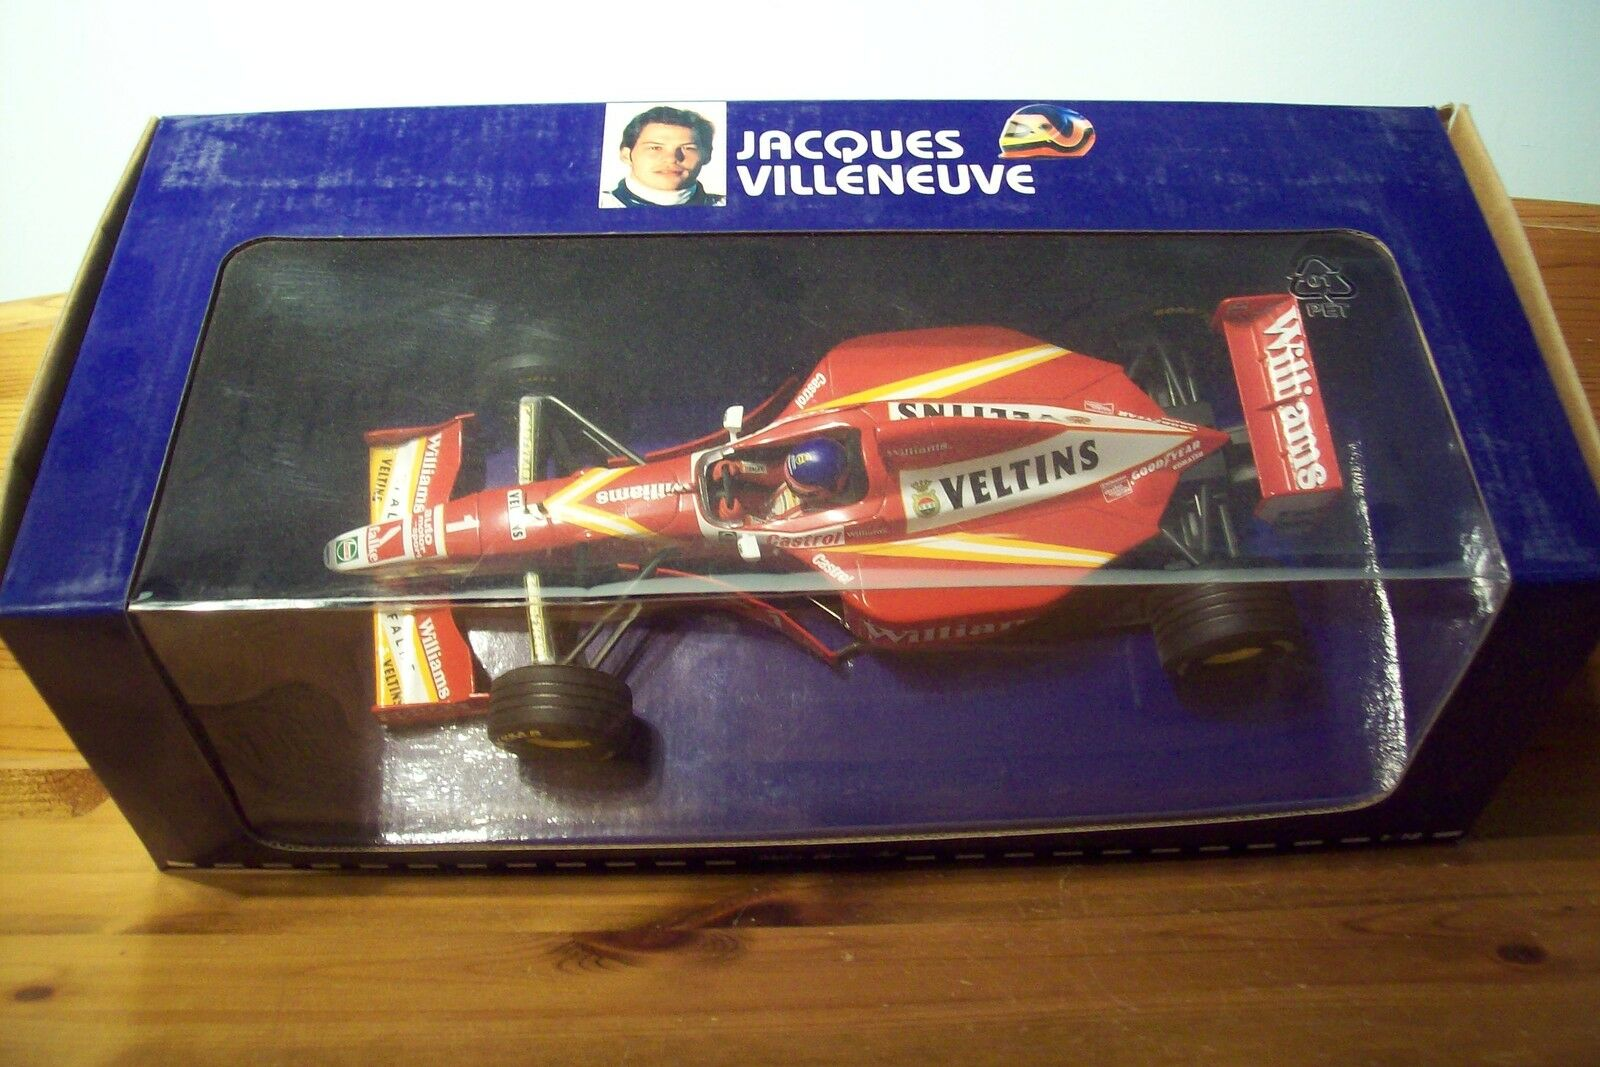 1/18 Williams mecachrome 1998 versione di lancio JACQUES VILLENEUVE SR.